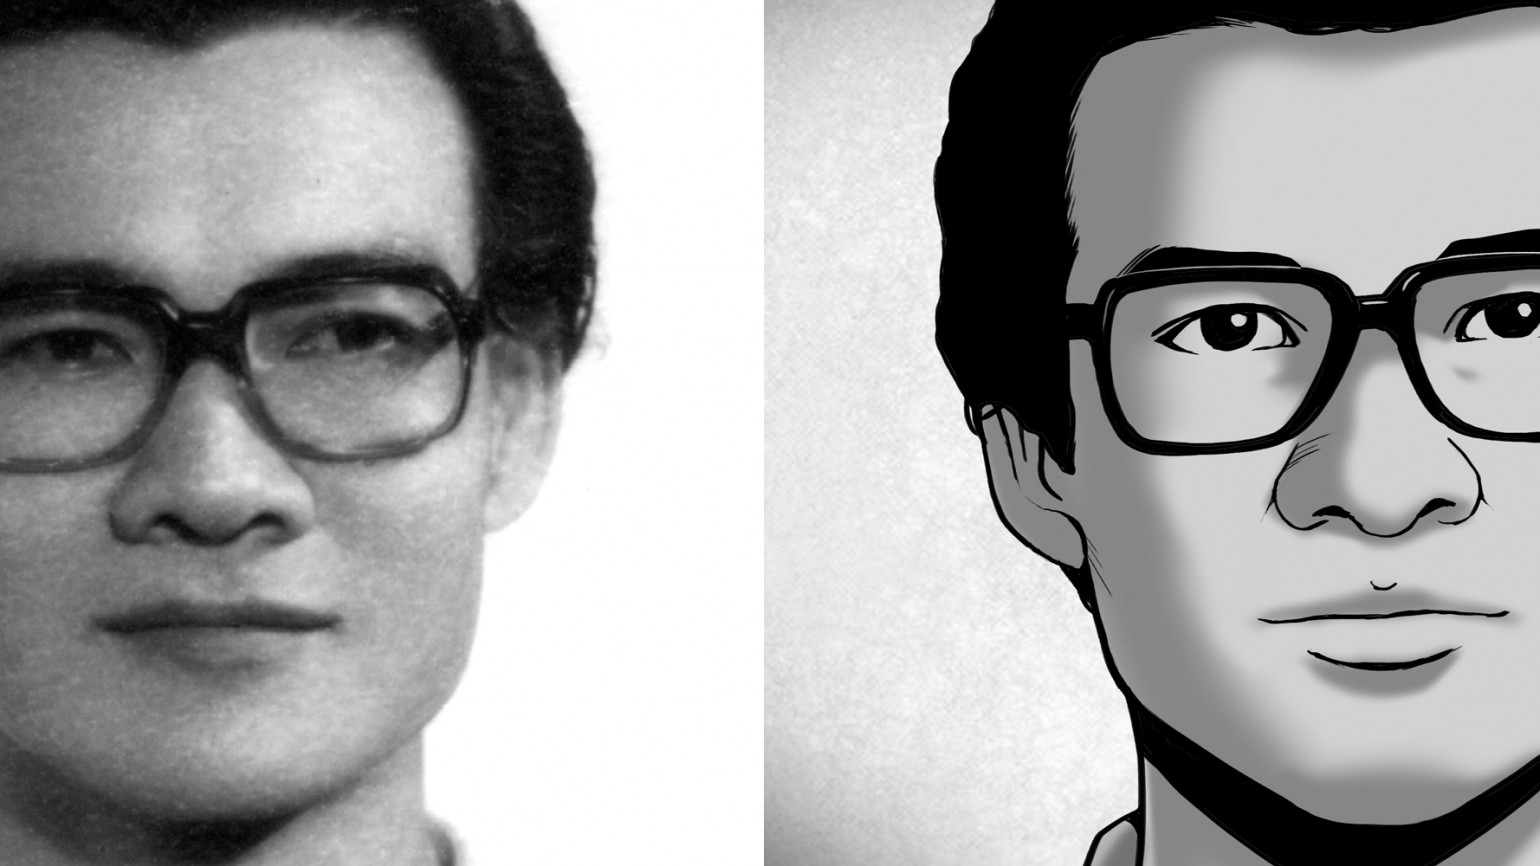 """Dr. Haing S. Ngor in a photo taken in Phnom Penh, 1975, just a few months prior to the capture of Cambodia by the Khmer Rouge. On the left is an illustration of the photo as seen in an animated scene in """"The Killing Fields of Dr. Haing S. Ngor."""" Photo courtesy of the Dr. Haing S. Ngor Archive. Illustration by Yori Mochizuki."""